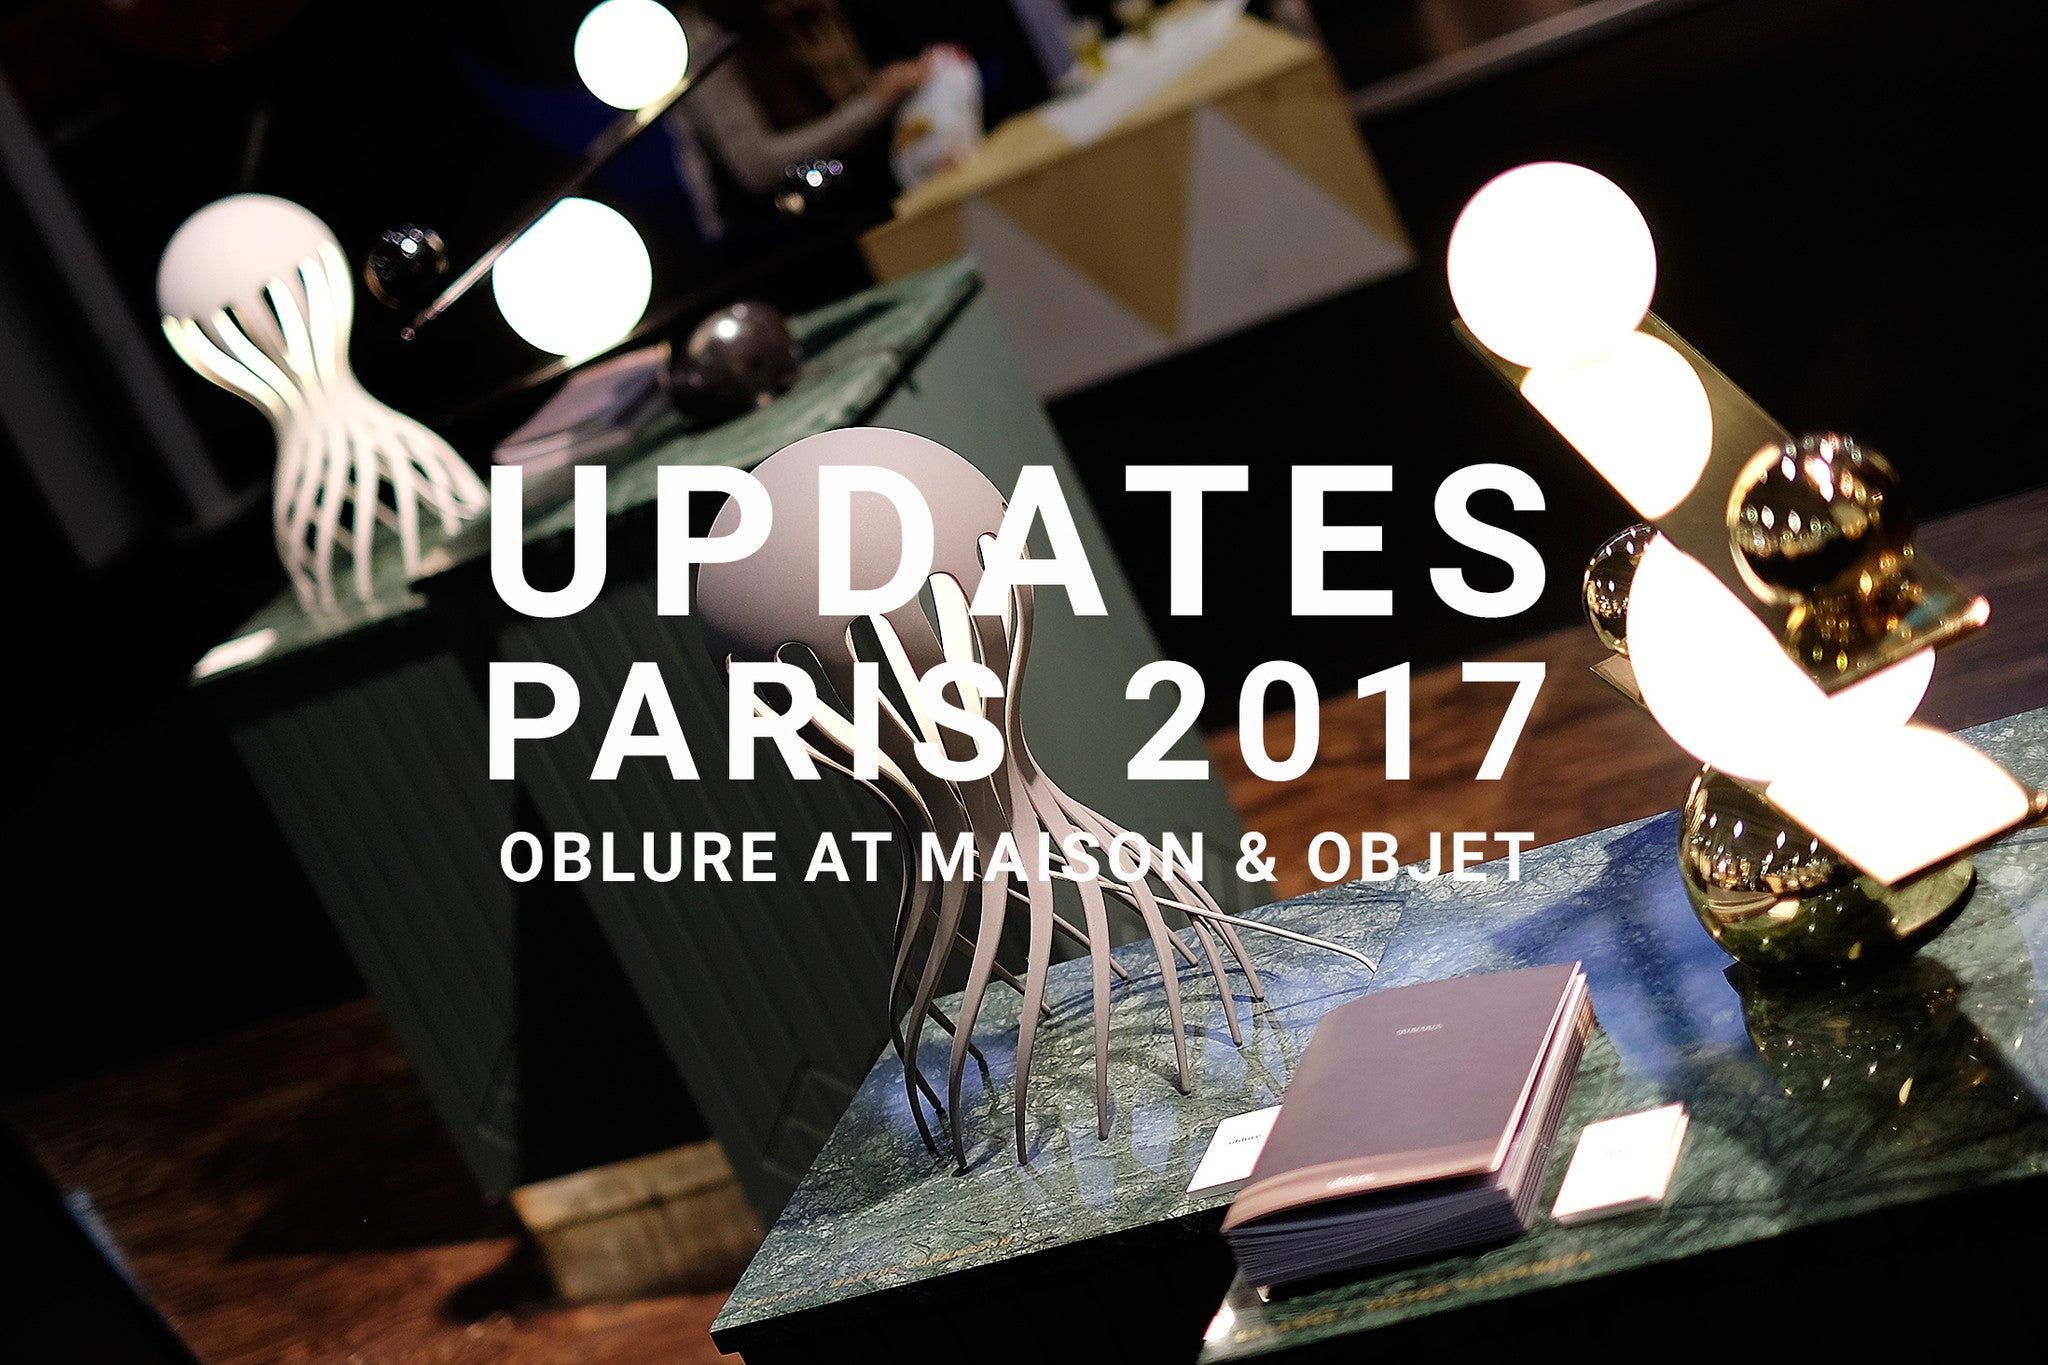 Updates from Maison & Objet 2017